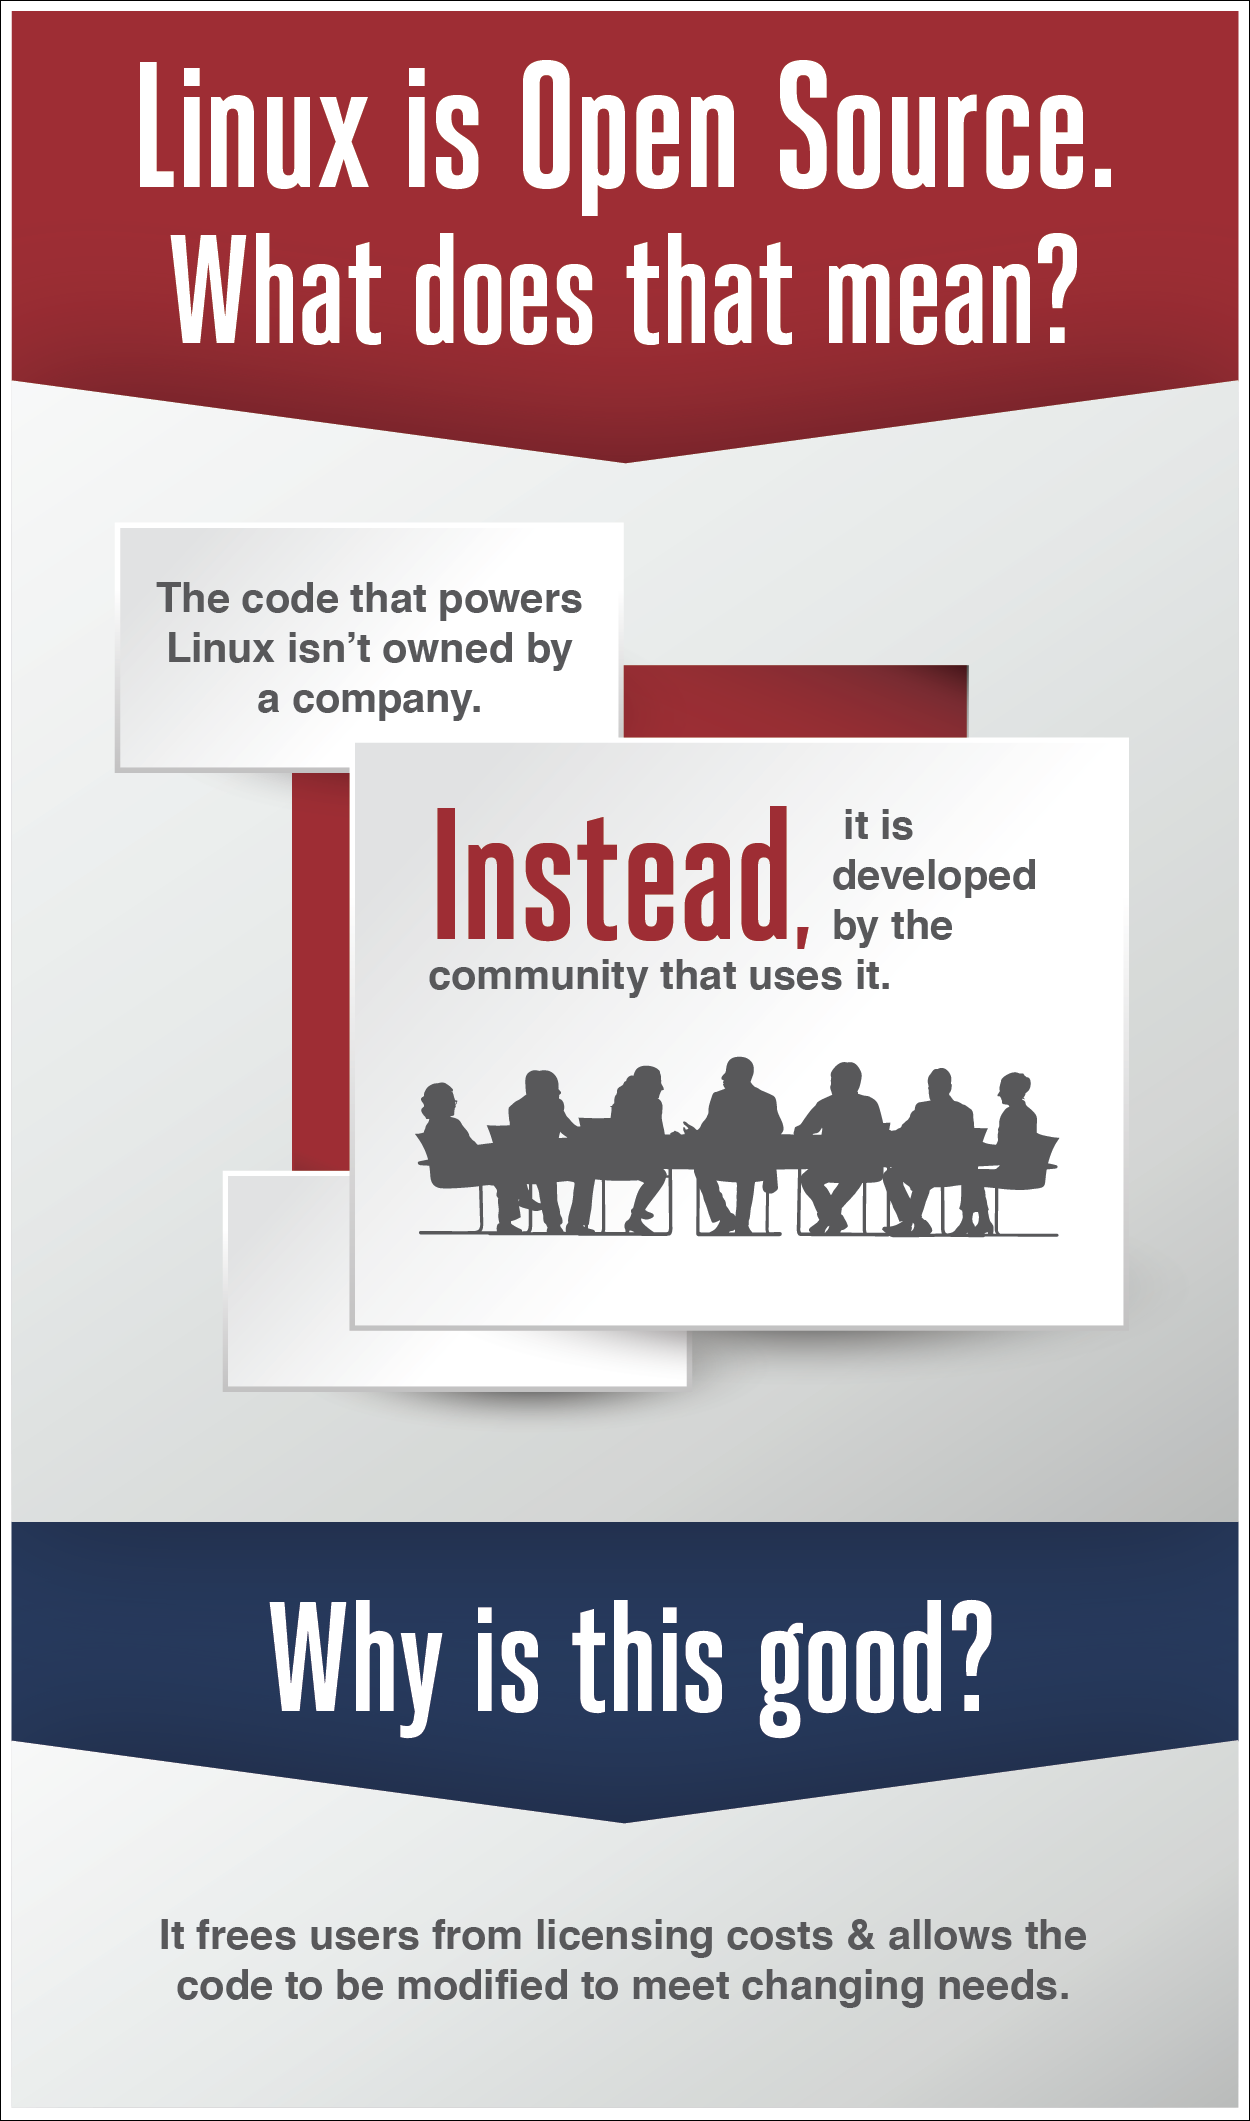 Linux Professional Institute offers a roadmap to IT success. Build confidence and in your Linux skills and unlock opportunities with Linux Essentials. Get to the top of the resume stack, invest in your skills, and become a server professional with the LPIC-1 certification.  Earn more respect and money, show your ready for new projects, and become an network professional with the LPIC-2 certification. Achieve long-term career growth and become an Enterprise Professional with the LPIC-3 certification.